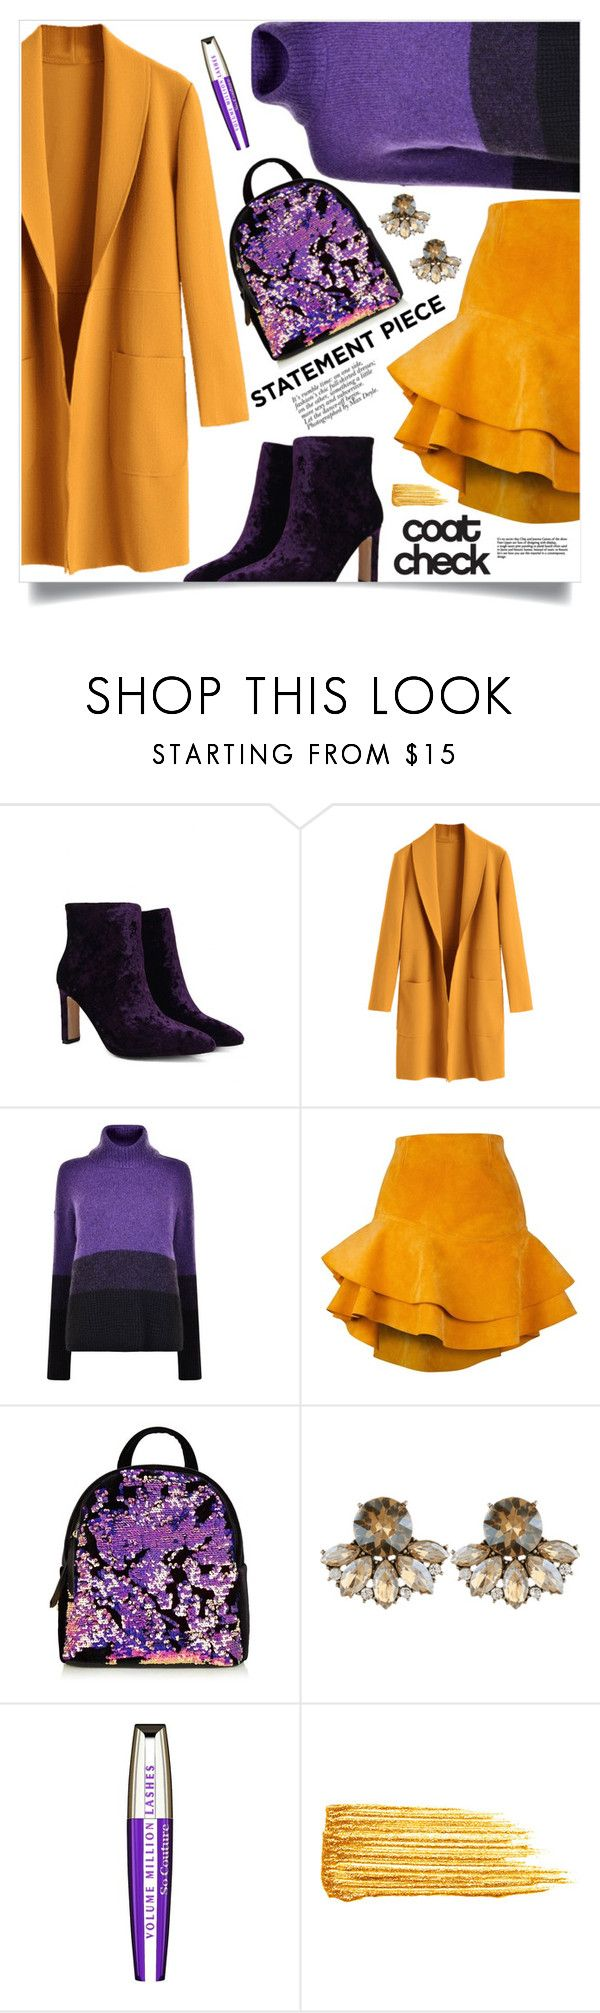 """Go Bold: Statement Coats"" by mahafromkailash ❤ liked on Polyvore featuring BOSS Orange, Siobhan Molloy, L'Oréal Paris and Yves Saint Laurent"